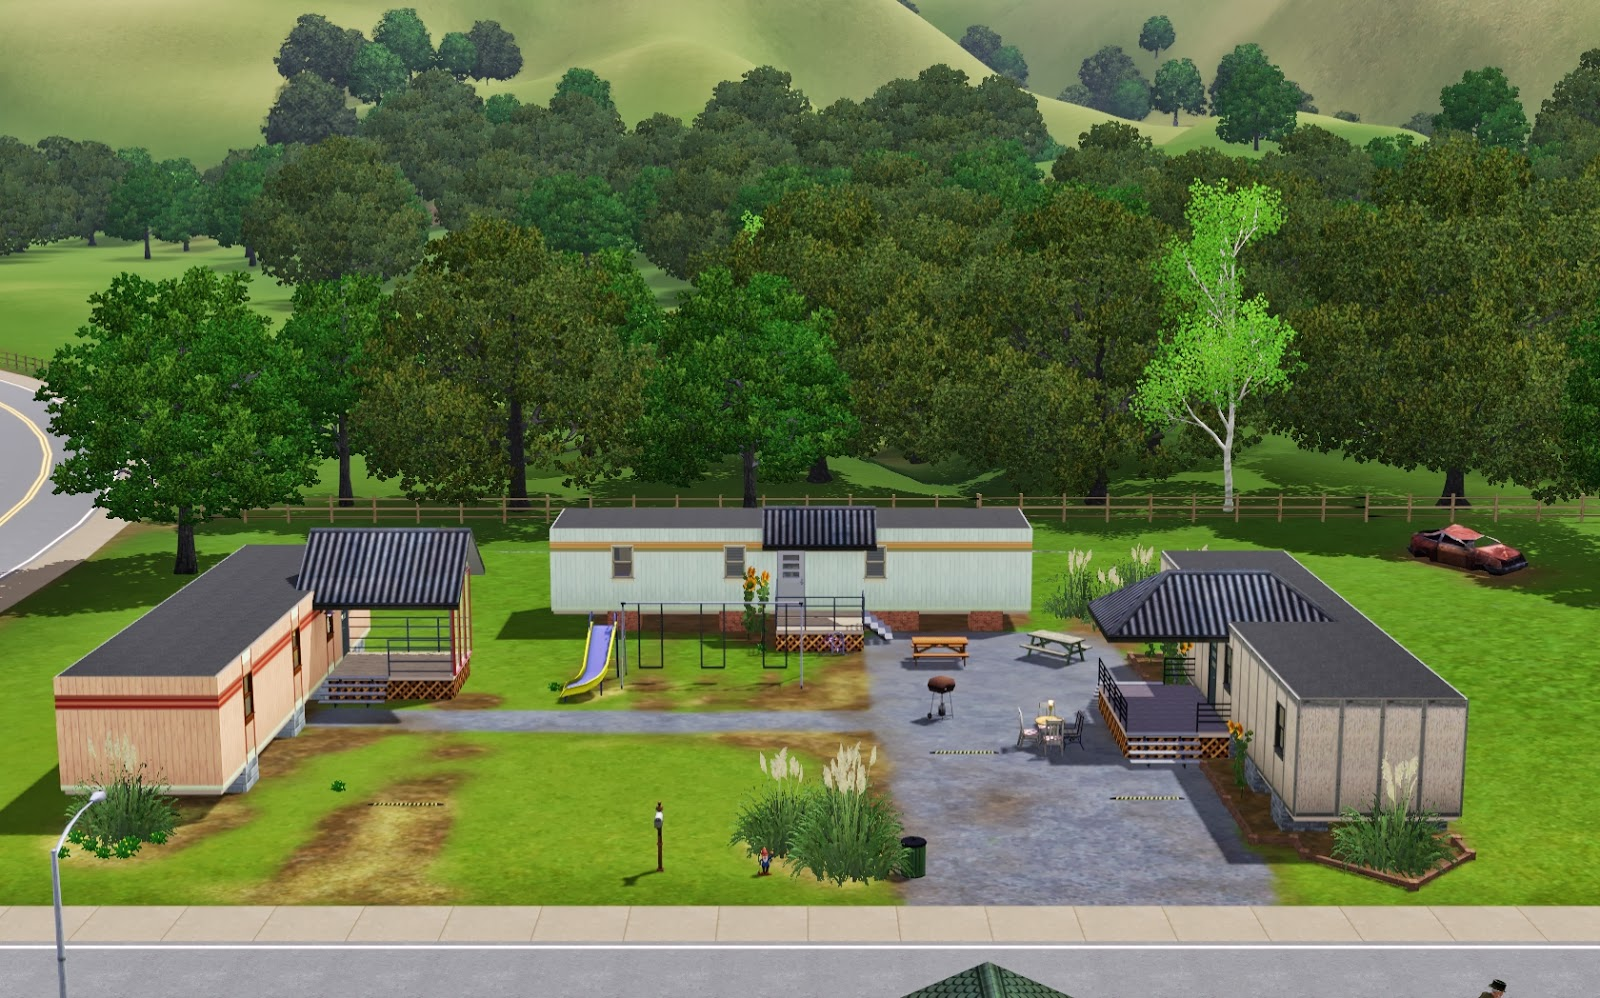 Summer 39 s little sims 3 garden riverview list of houses for Compound home designs